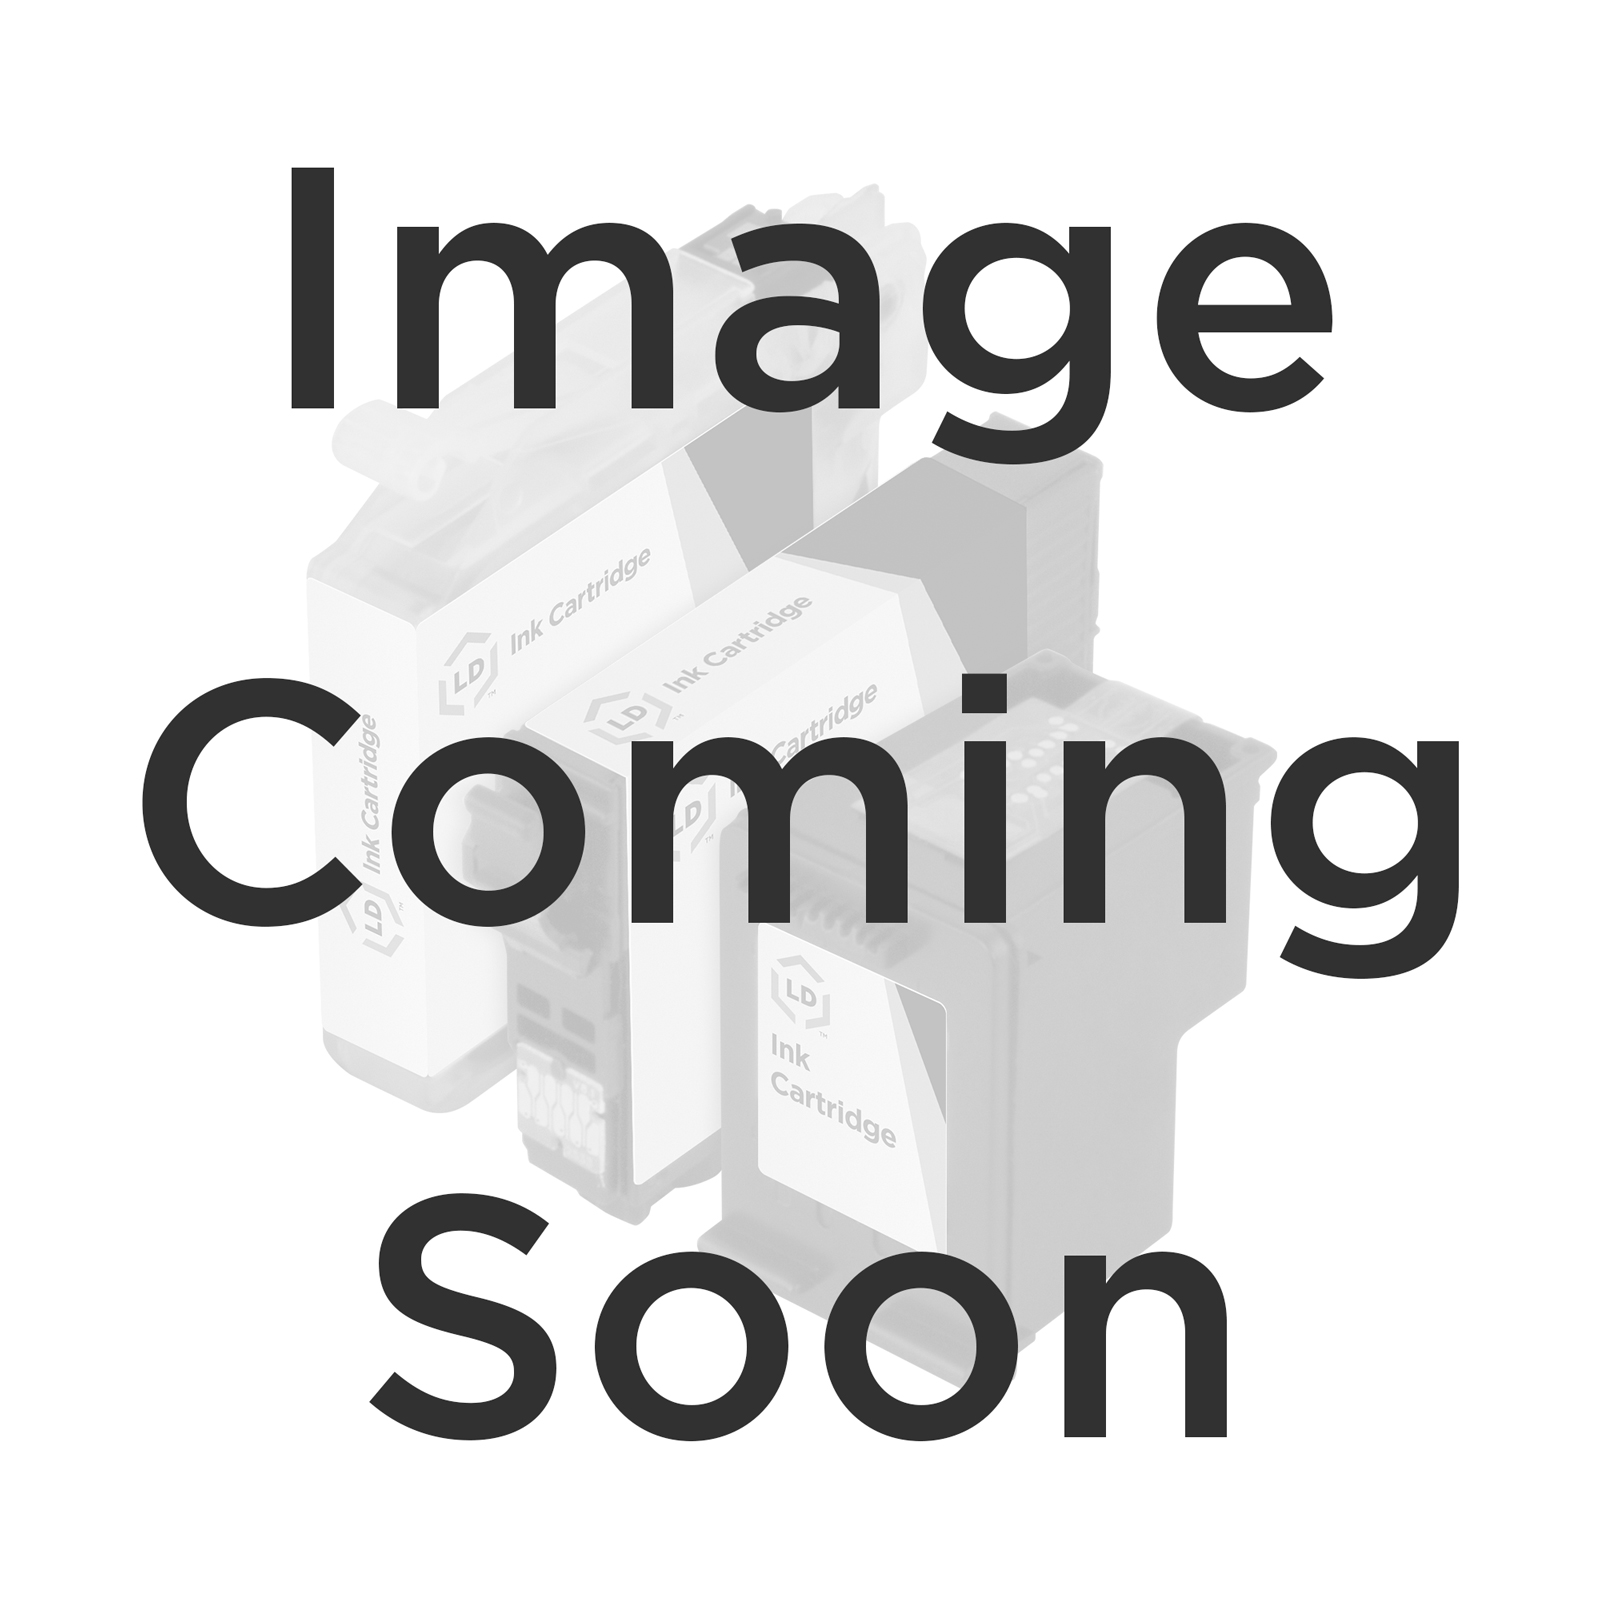 Shell Daily Math Stretches: Building Conceptual Understanding: Levels K-2 Education Printed Book for Mathematics by Laney Sammons - English